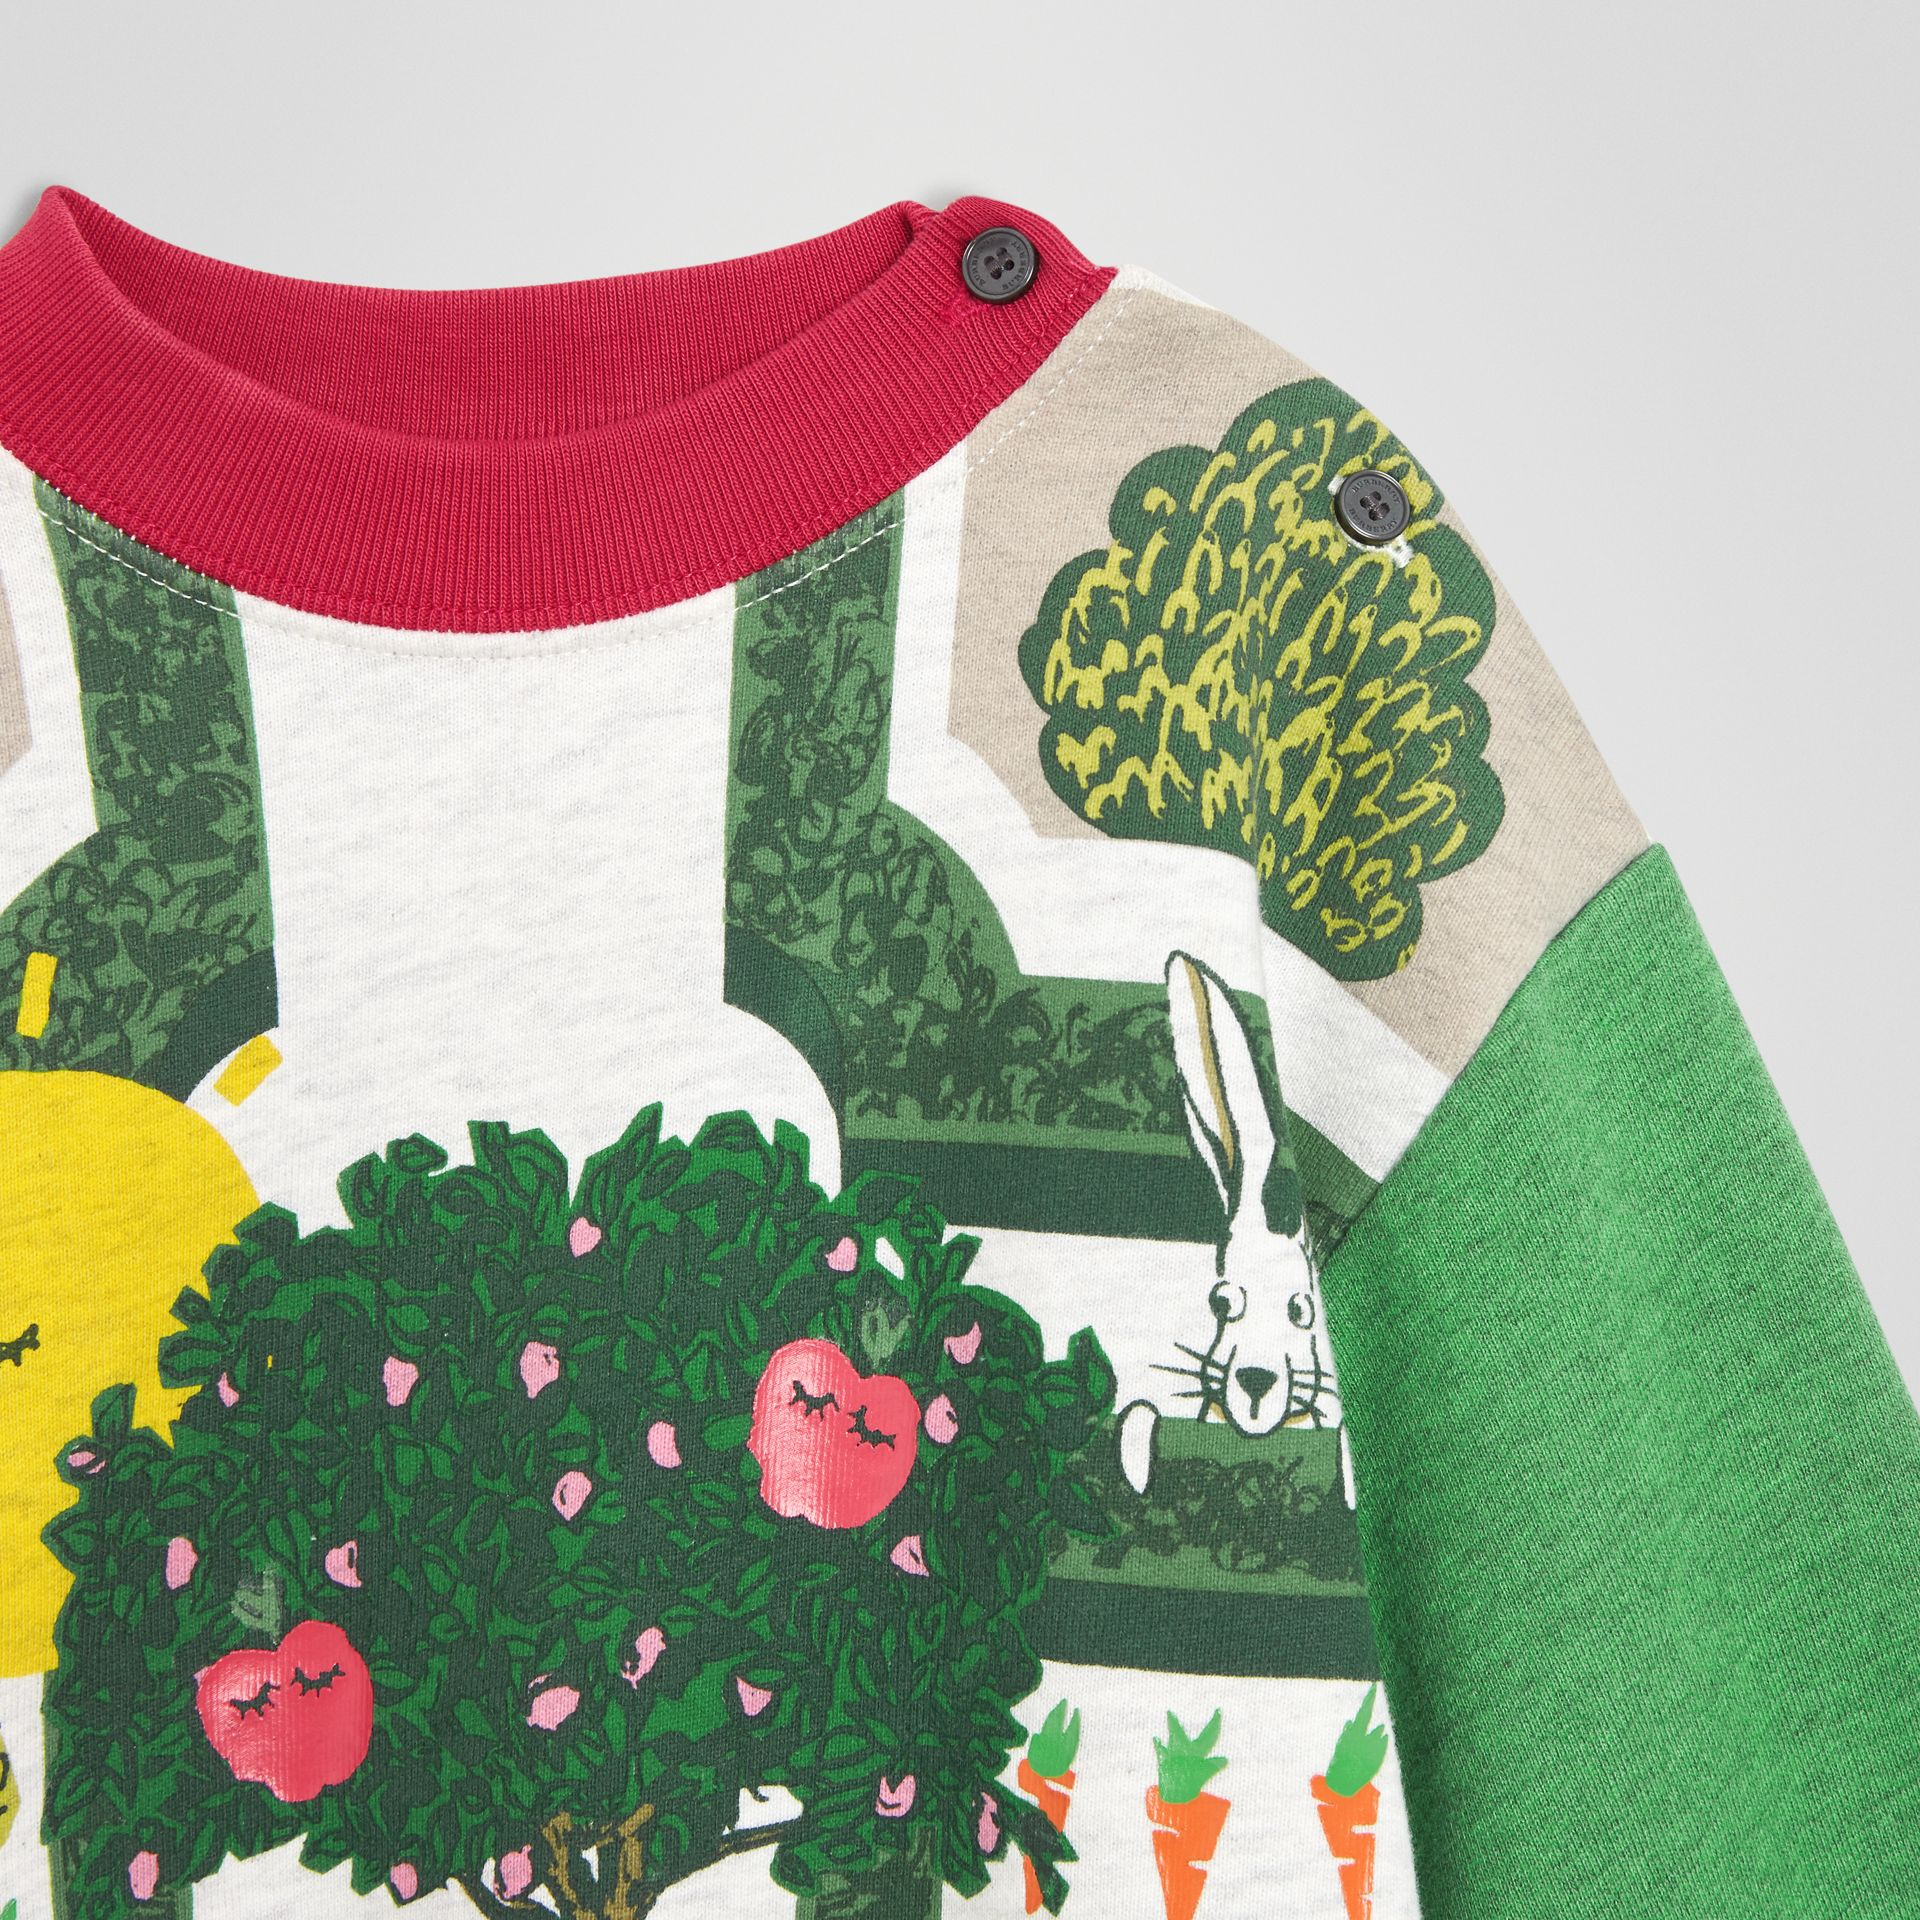 Hedge Maze Print Cotton Dress in Multicolour - Children | Burberry Australia - gallery image 4